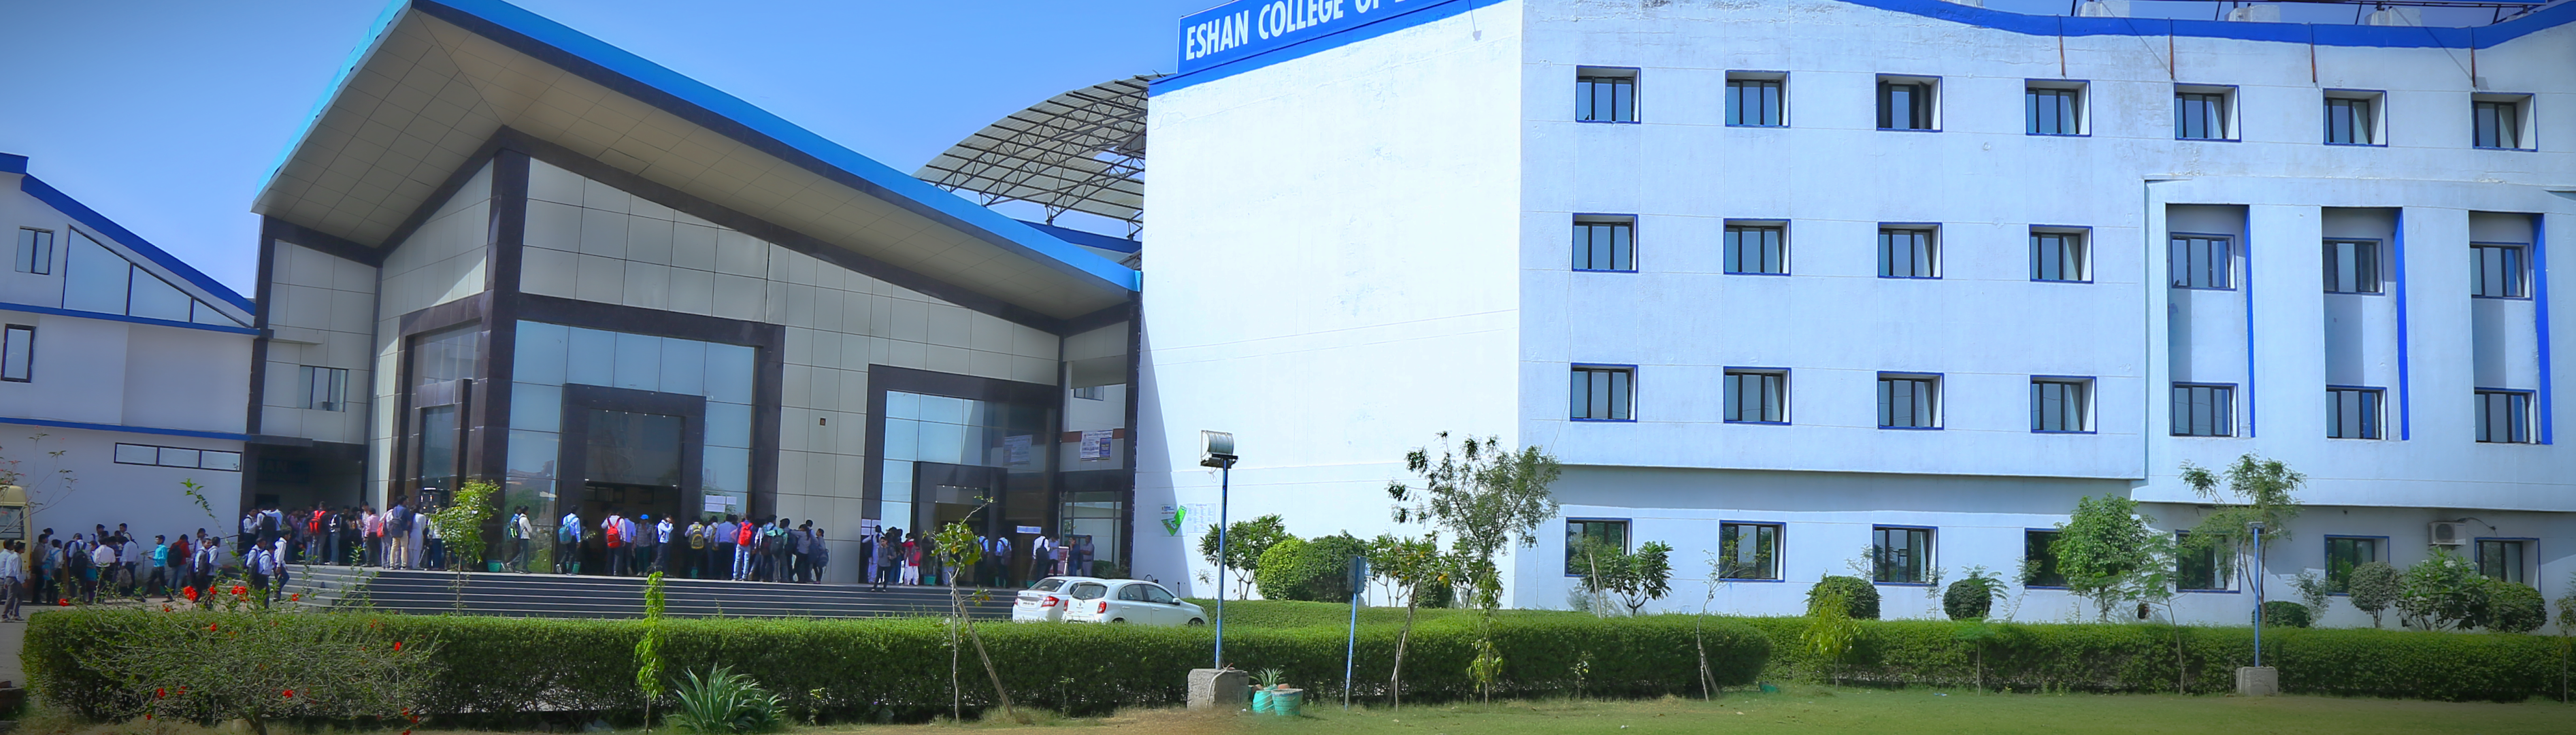 Eshan Group of Institutions, Mathura